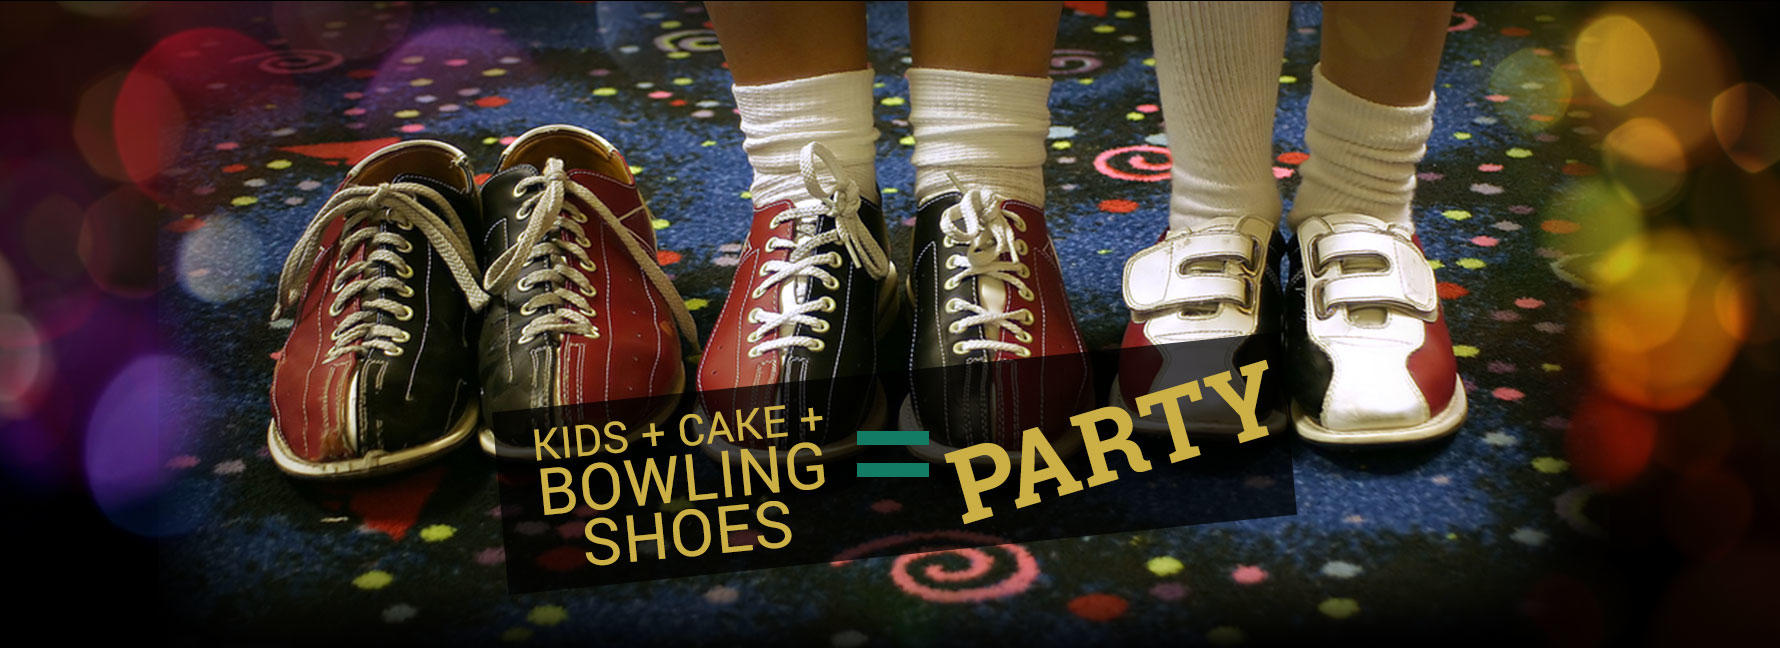 At Oak Mountain Lanes you and your family can enjoy everything you need for an exciting night out at one low price. With this deal your family can enjoy some friendly competition, and when you're tired of knocking down the pins you can refuel with a 14